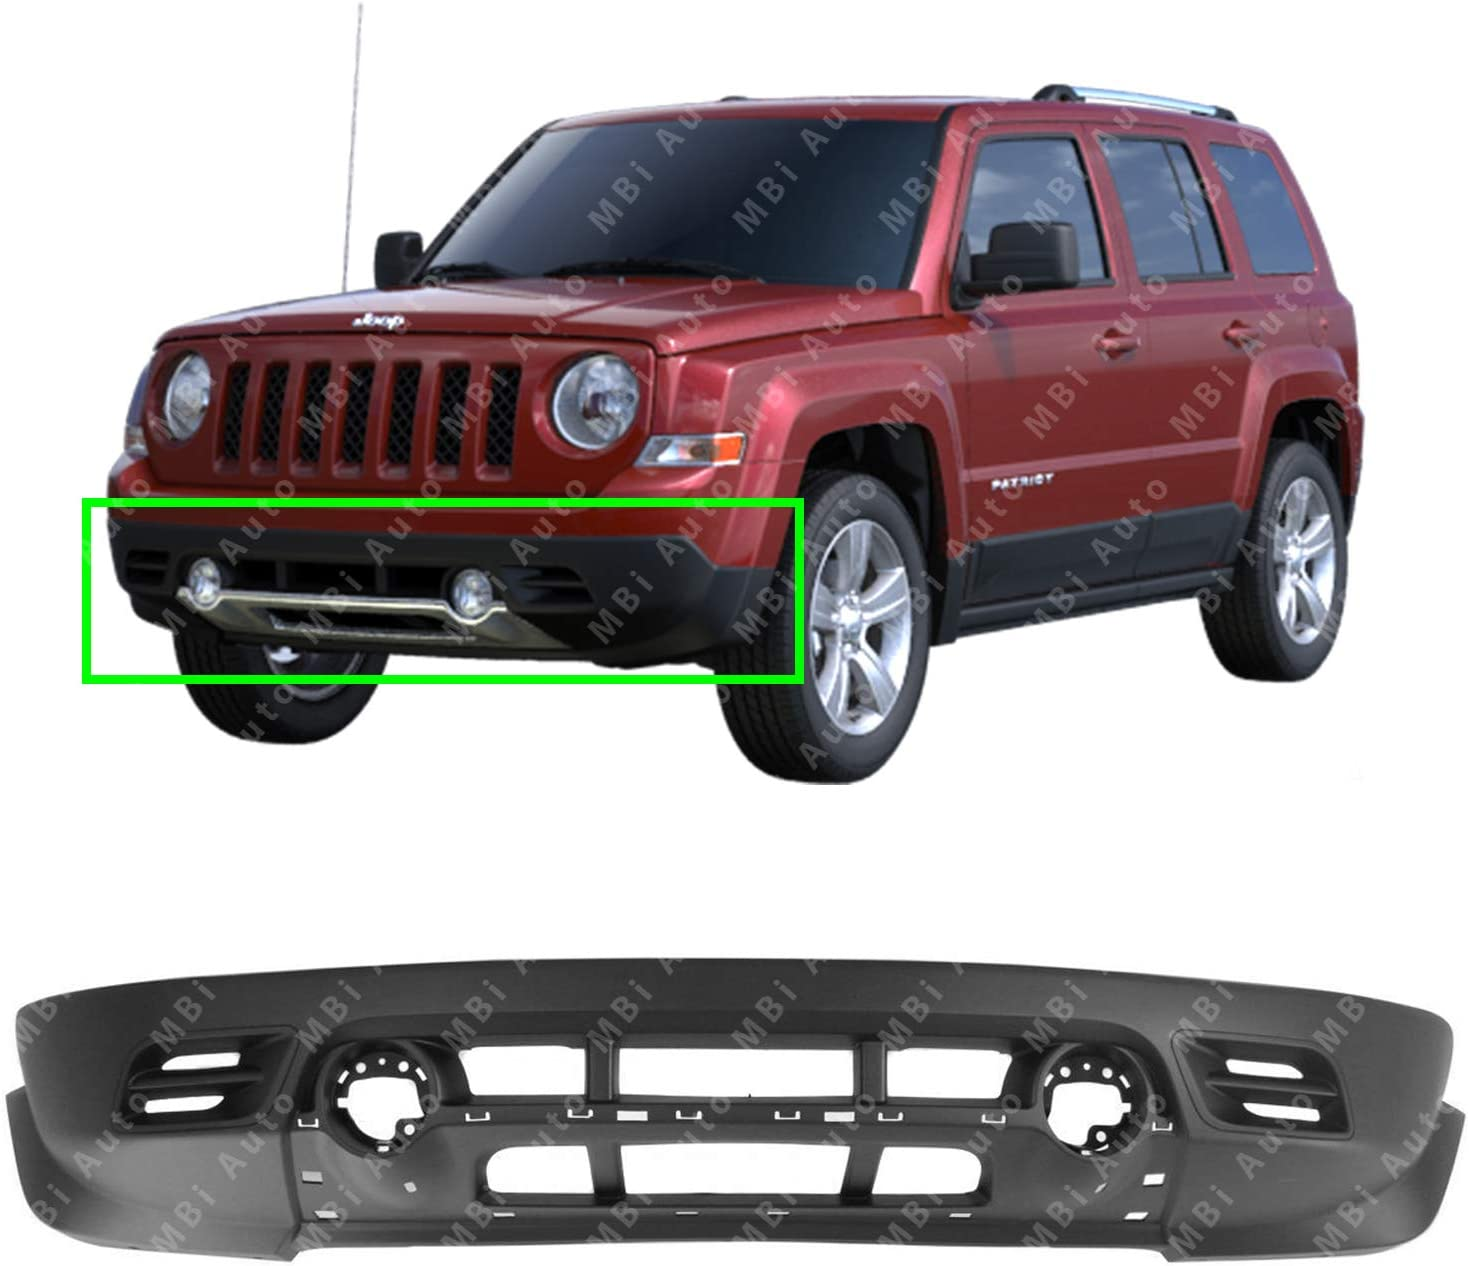 NEW FRONT LOWER BUMPER COVER FITS 2011-2017 JEEP PATRIOT CH1015111C CAPA